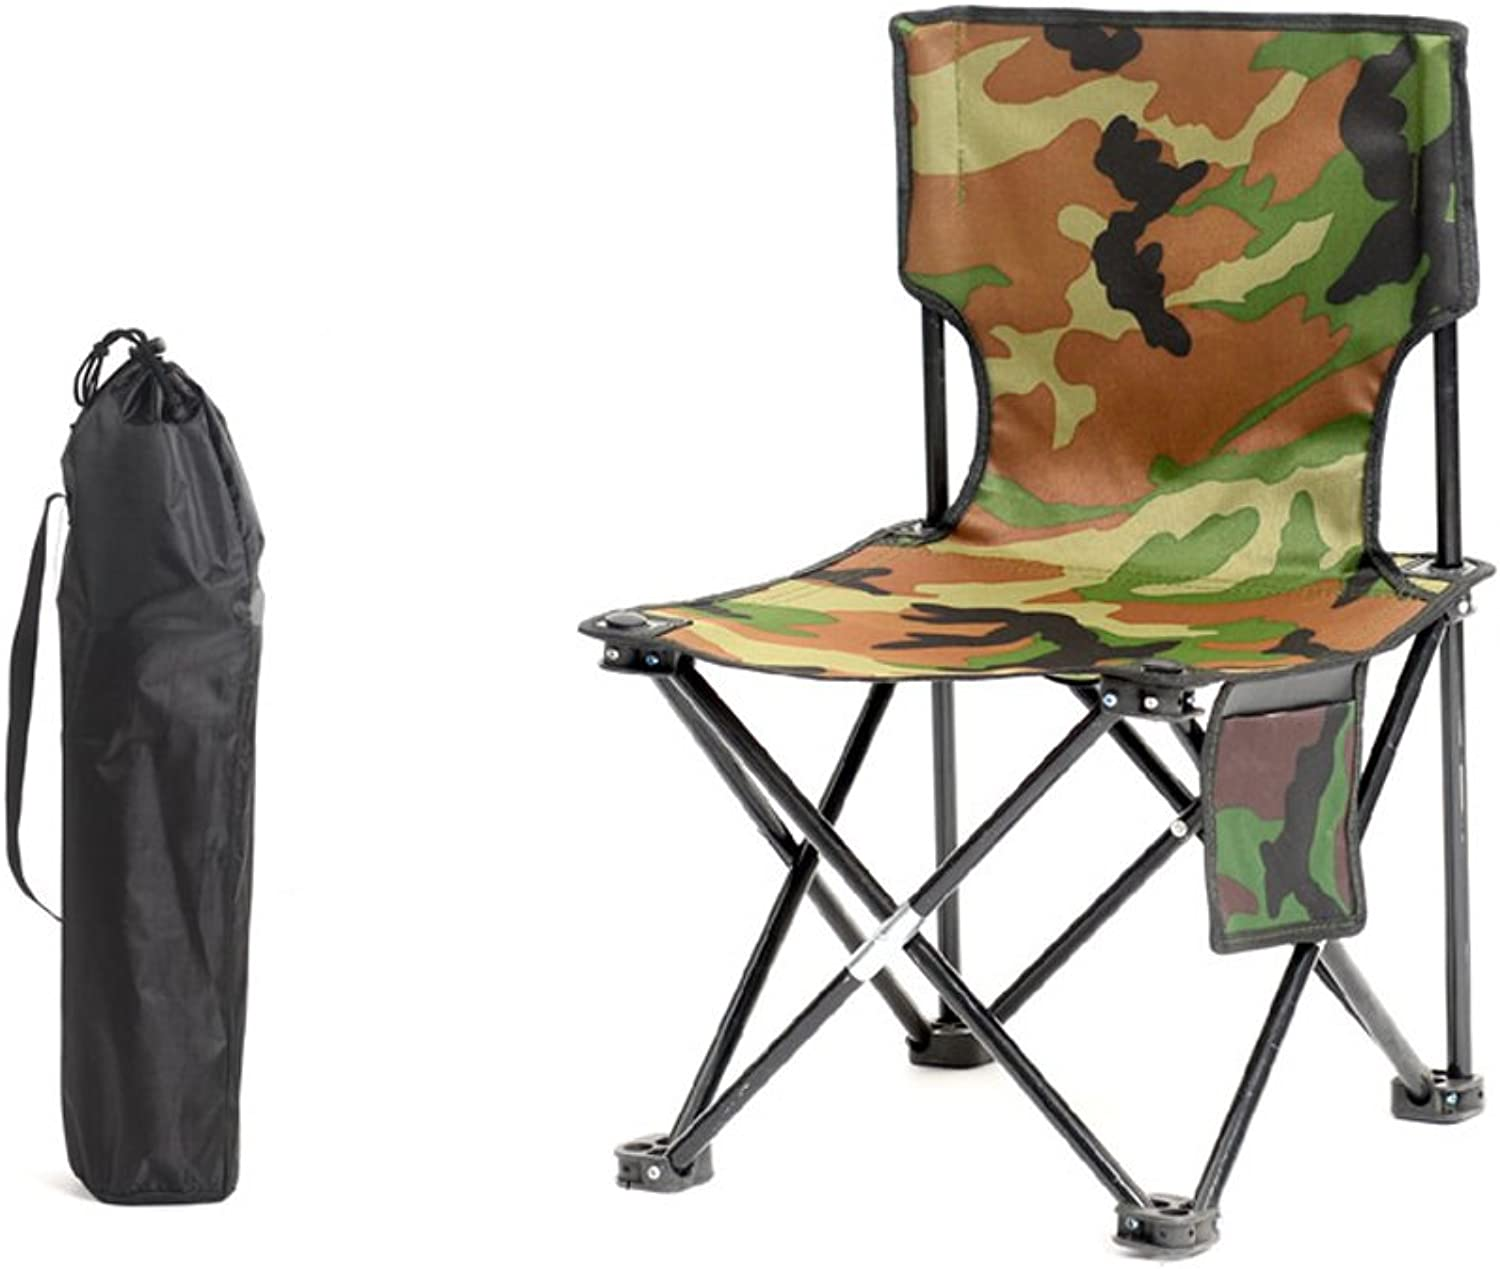 Homepage Outdoor Folding Chair Portable Beach Leisure Chair Folding maza Fishing Stool Back Sketch Chair Outdoor Chair (color   4 )